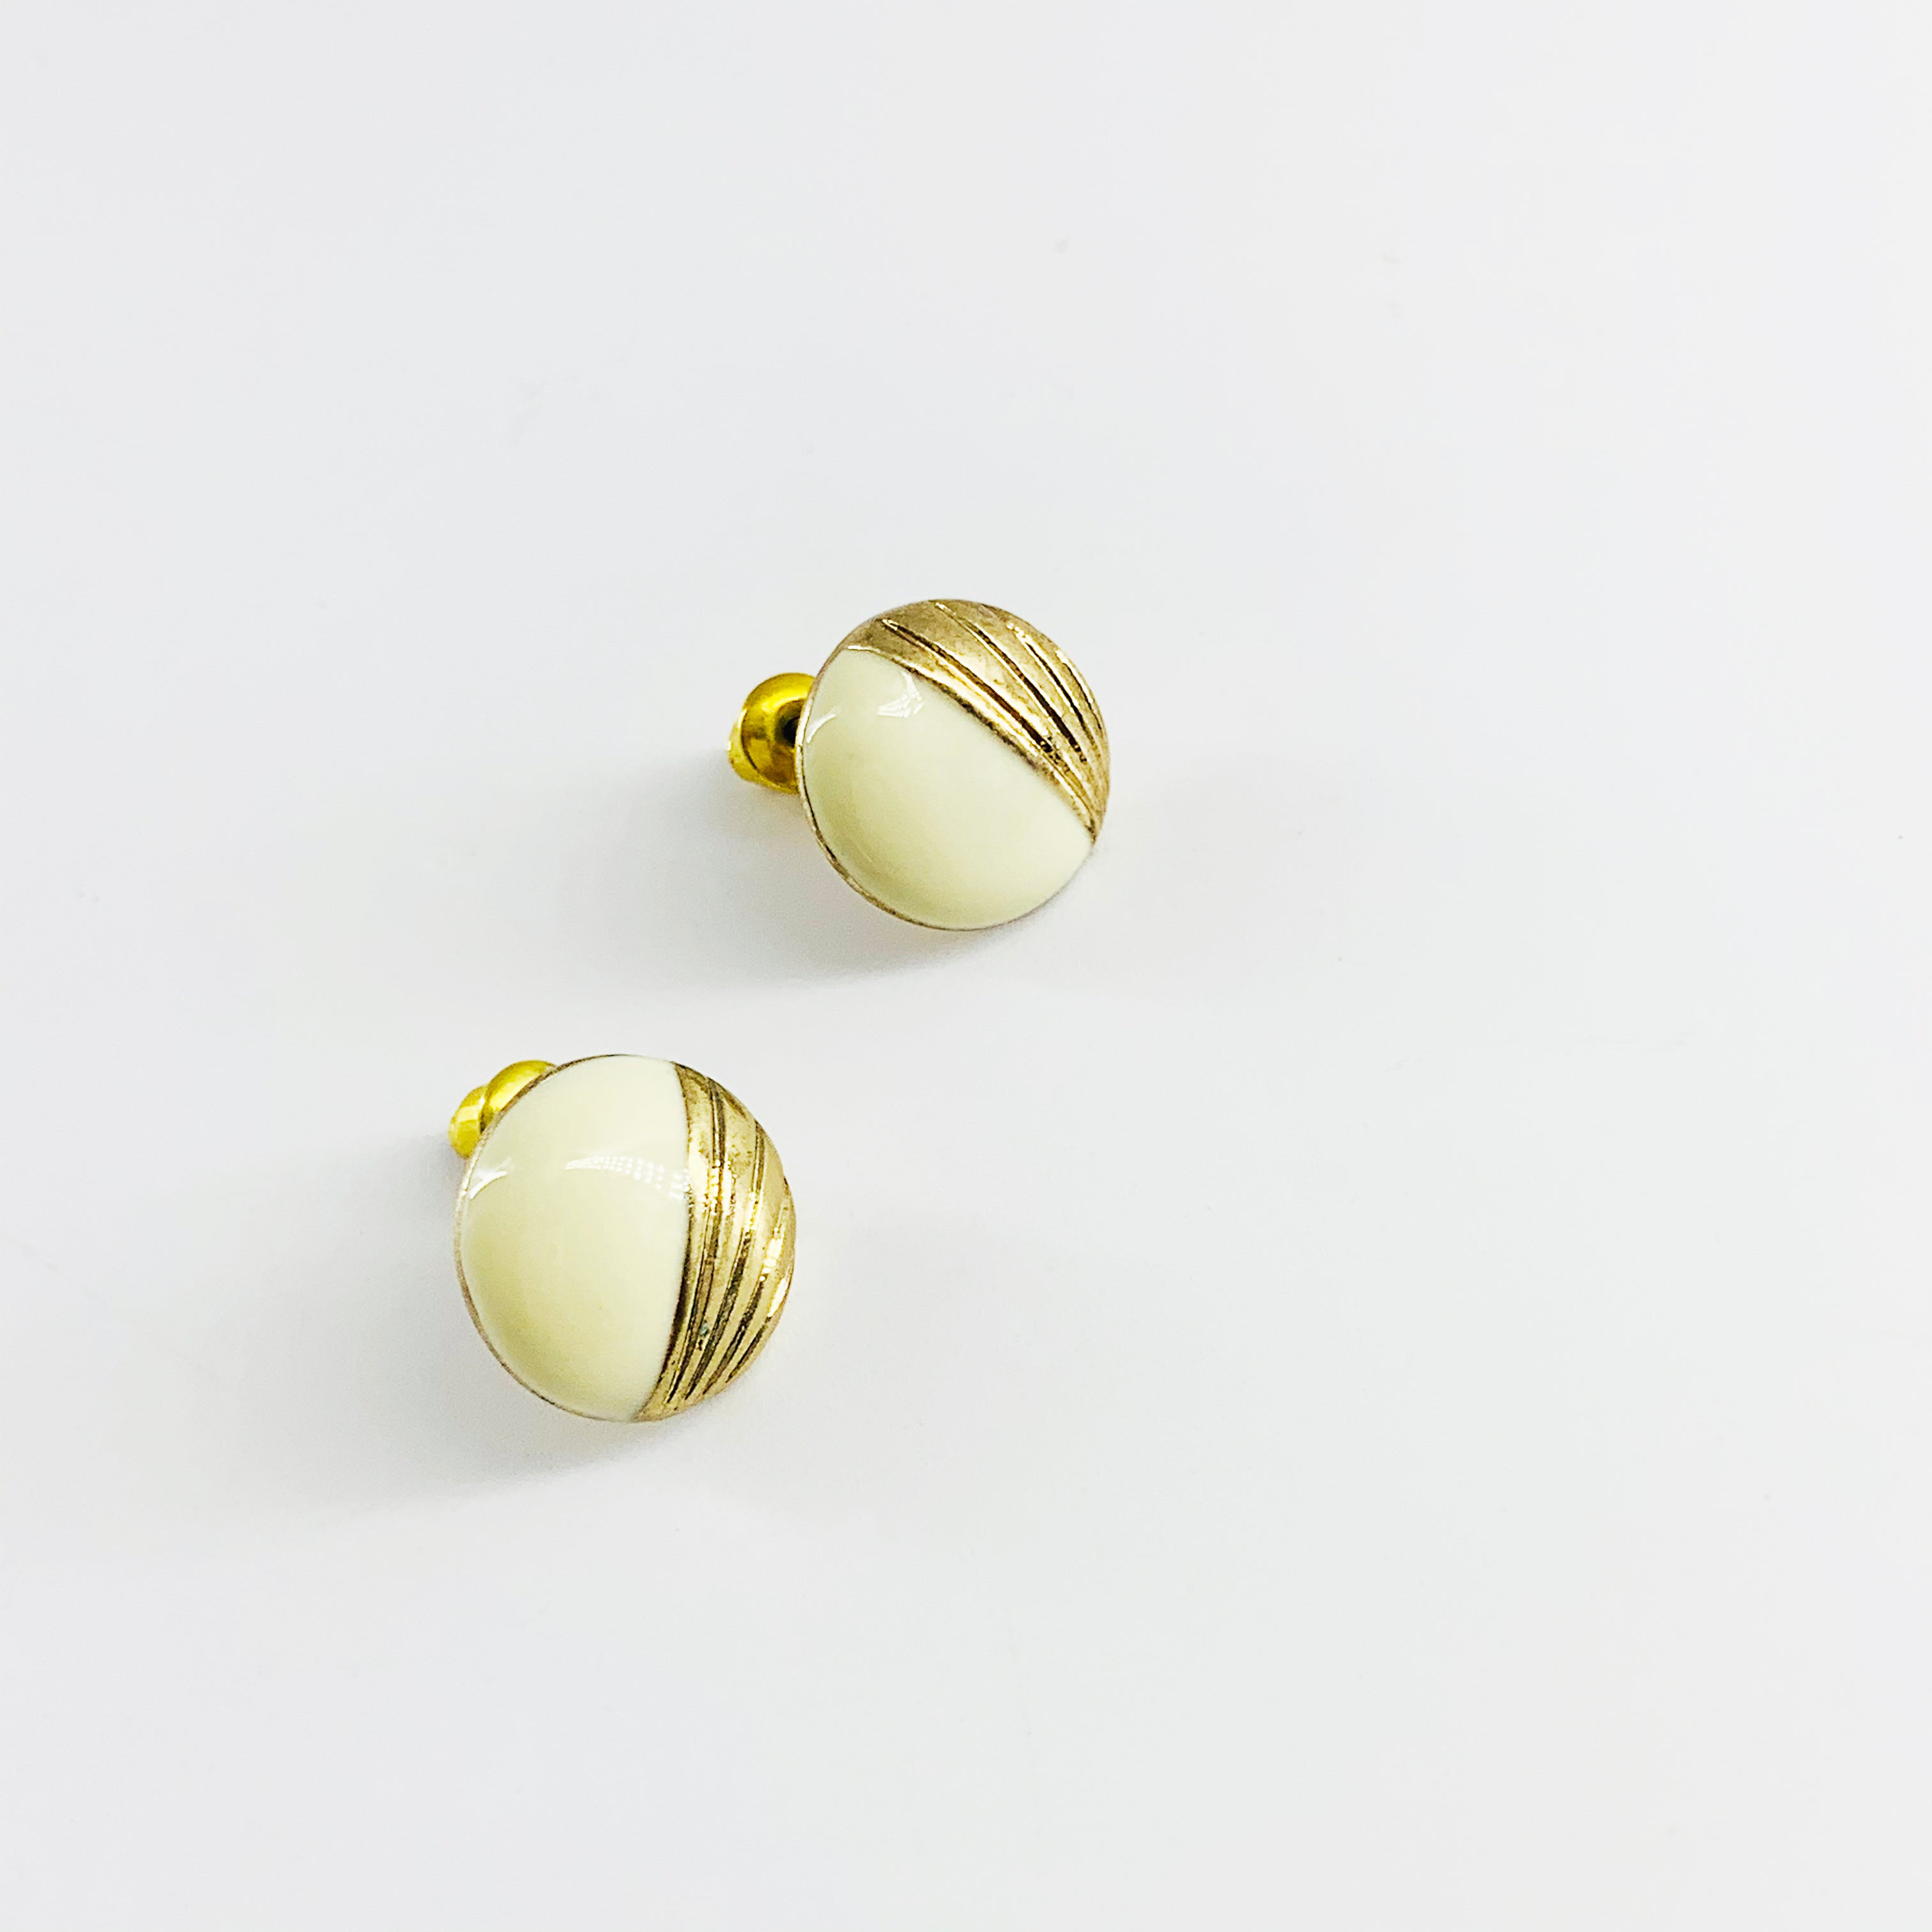 Round earrings with white enamel colour